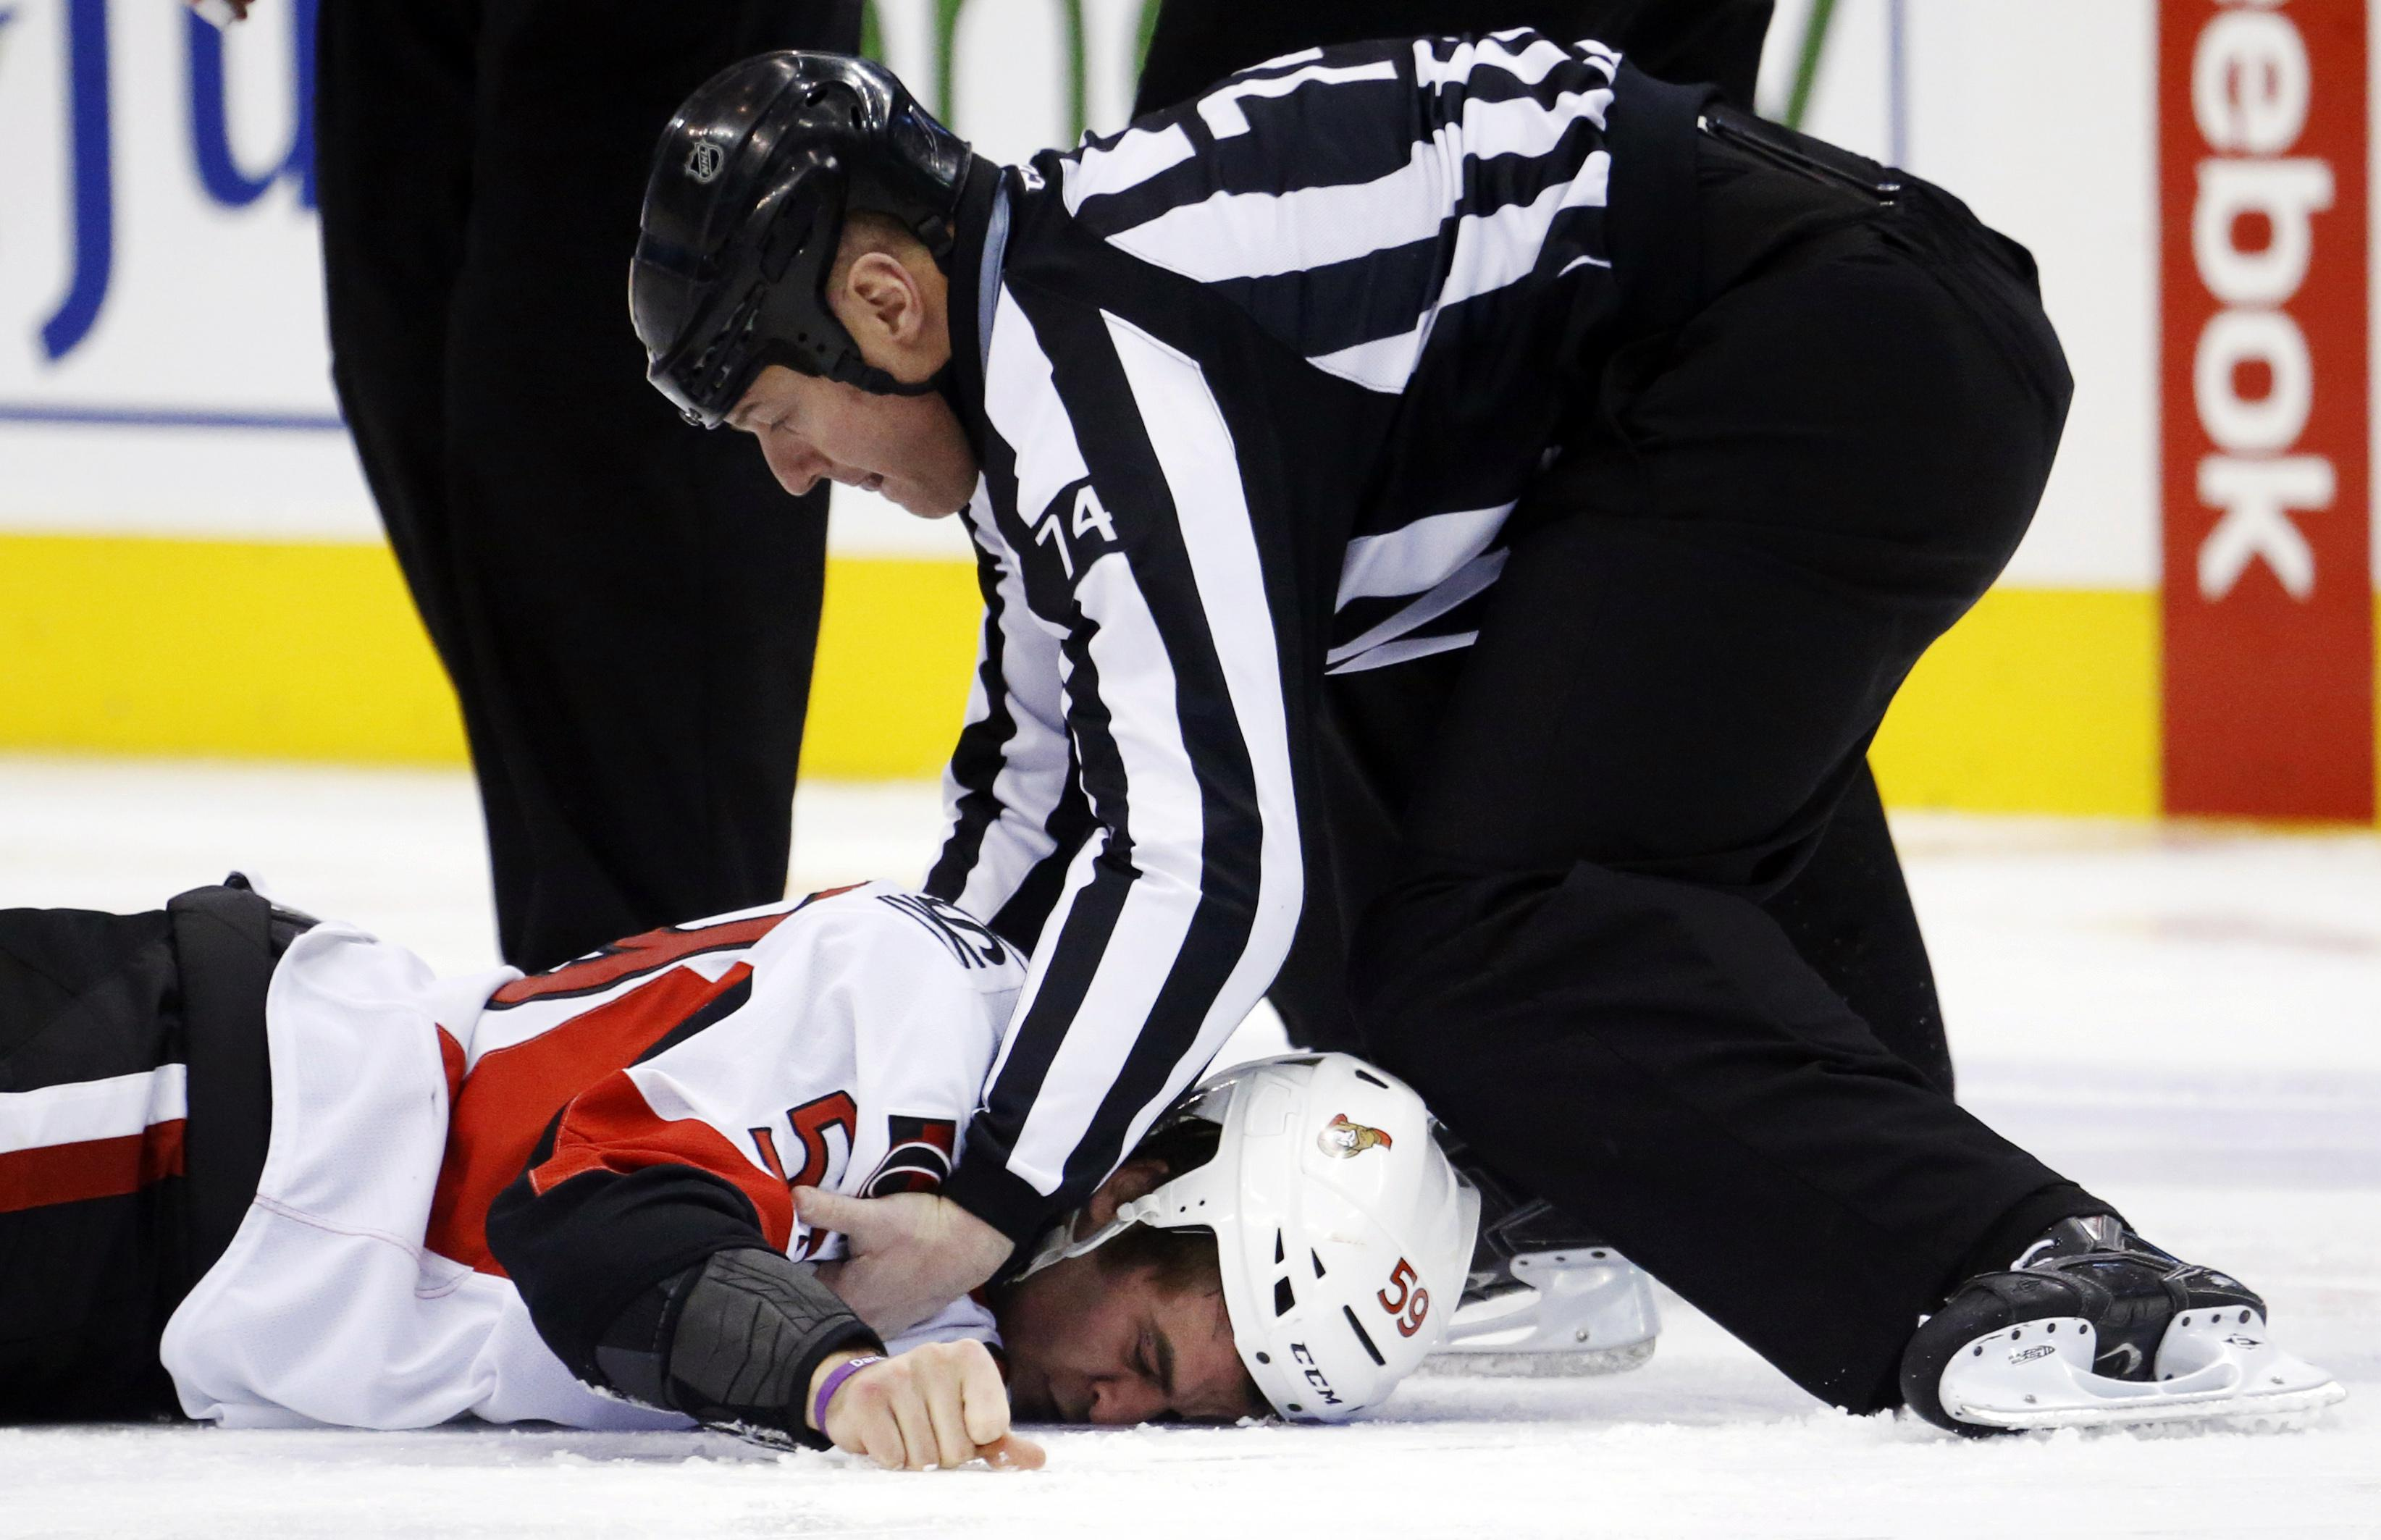 Senators rookie David Dziurzynski was knocked out cold in his first NHL fight. (Reuters)